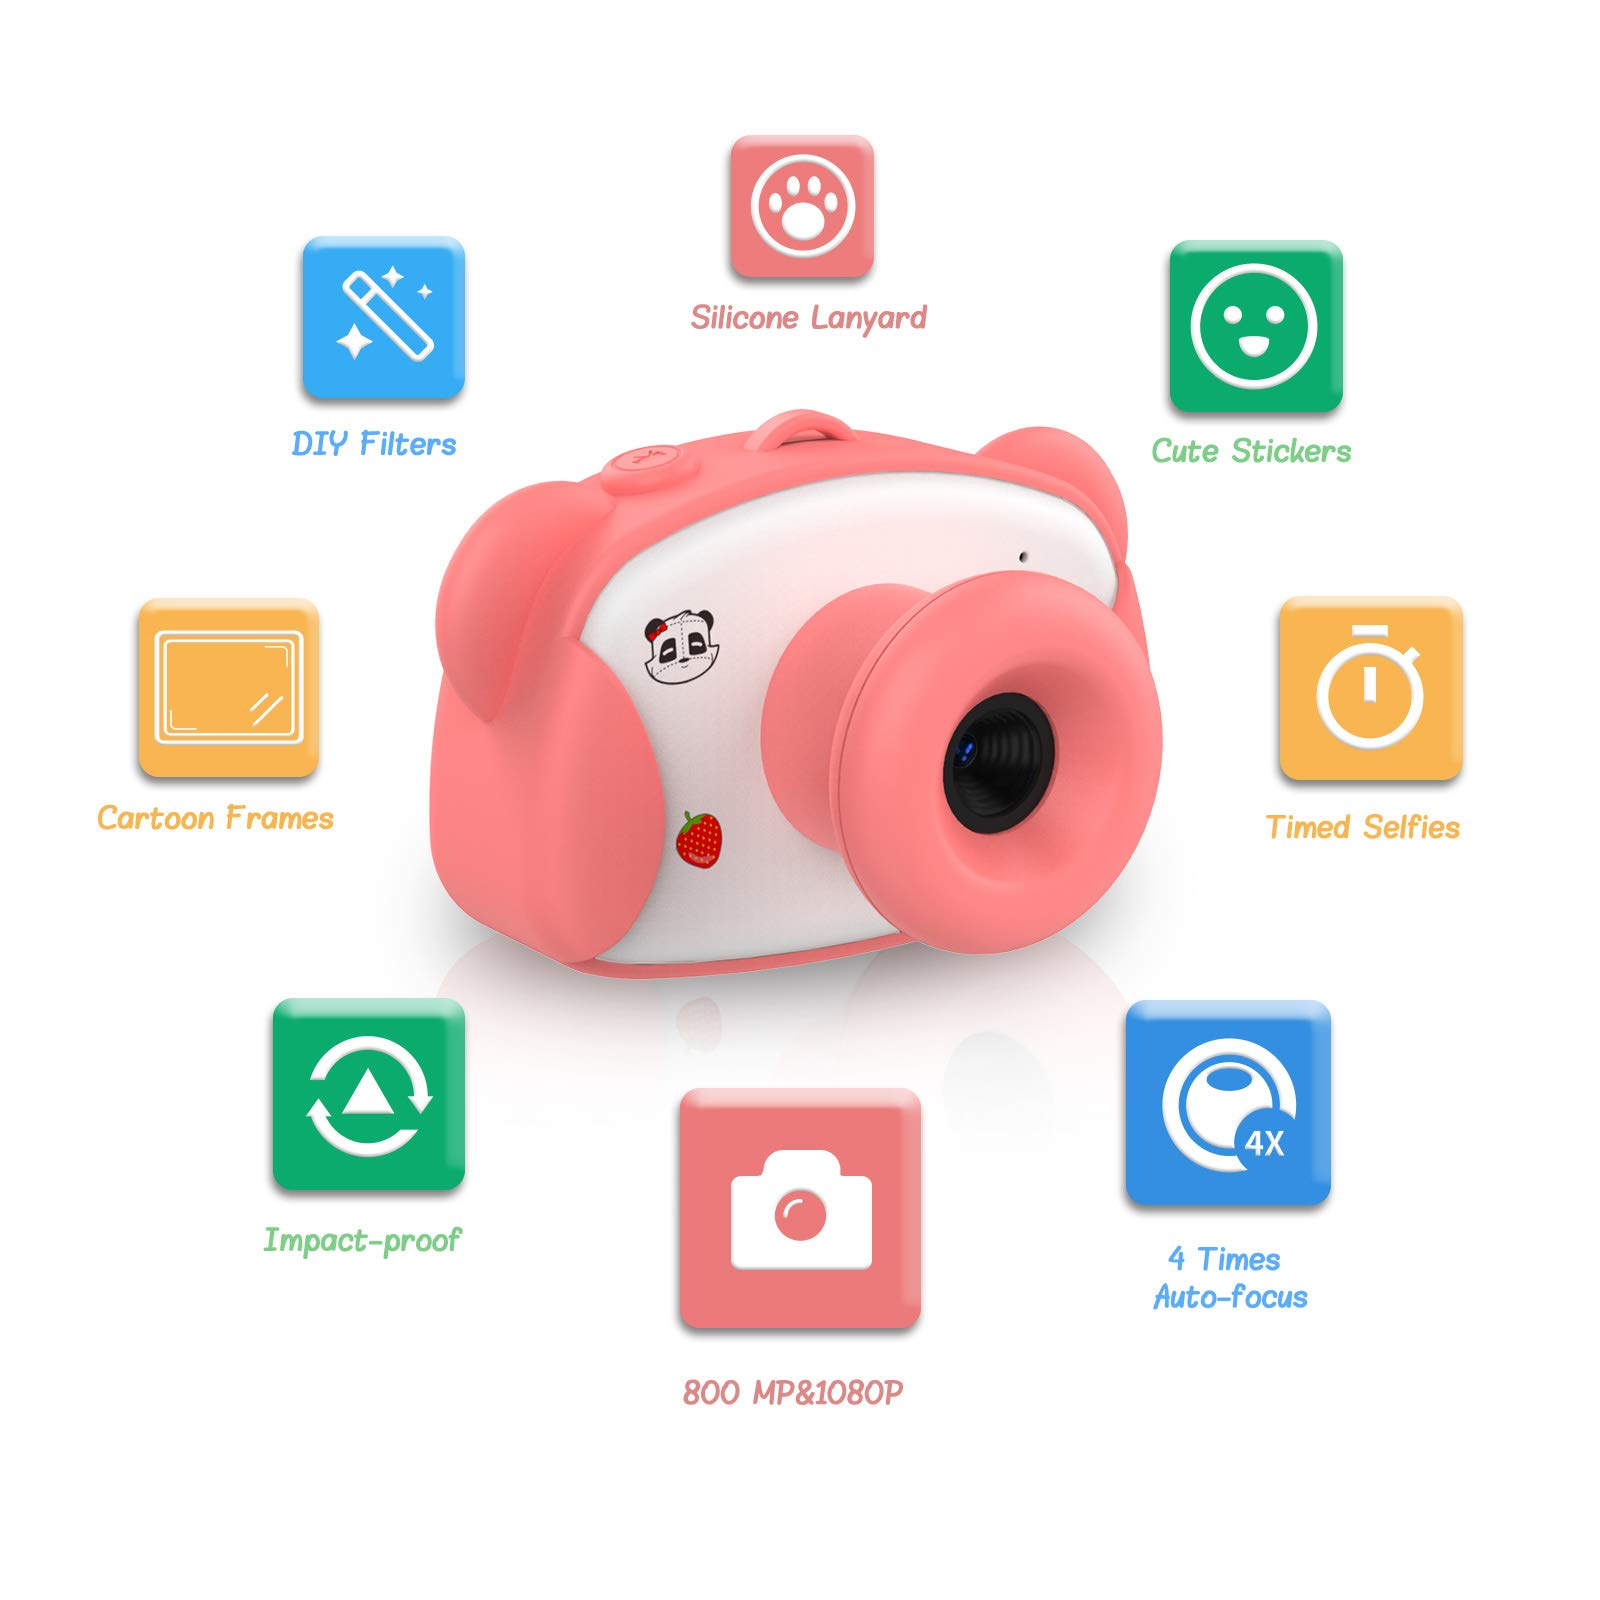 PATCH PANDA Kids Camera for Girls, Digital Video Camera for Kids (16G Memory Card Included) with Creative Stickers and Cartoon Frames, Gift Present for Kids Within 3 to 8 Years Old-Pink by PATCH PANDA (Image #3)